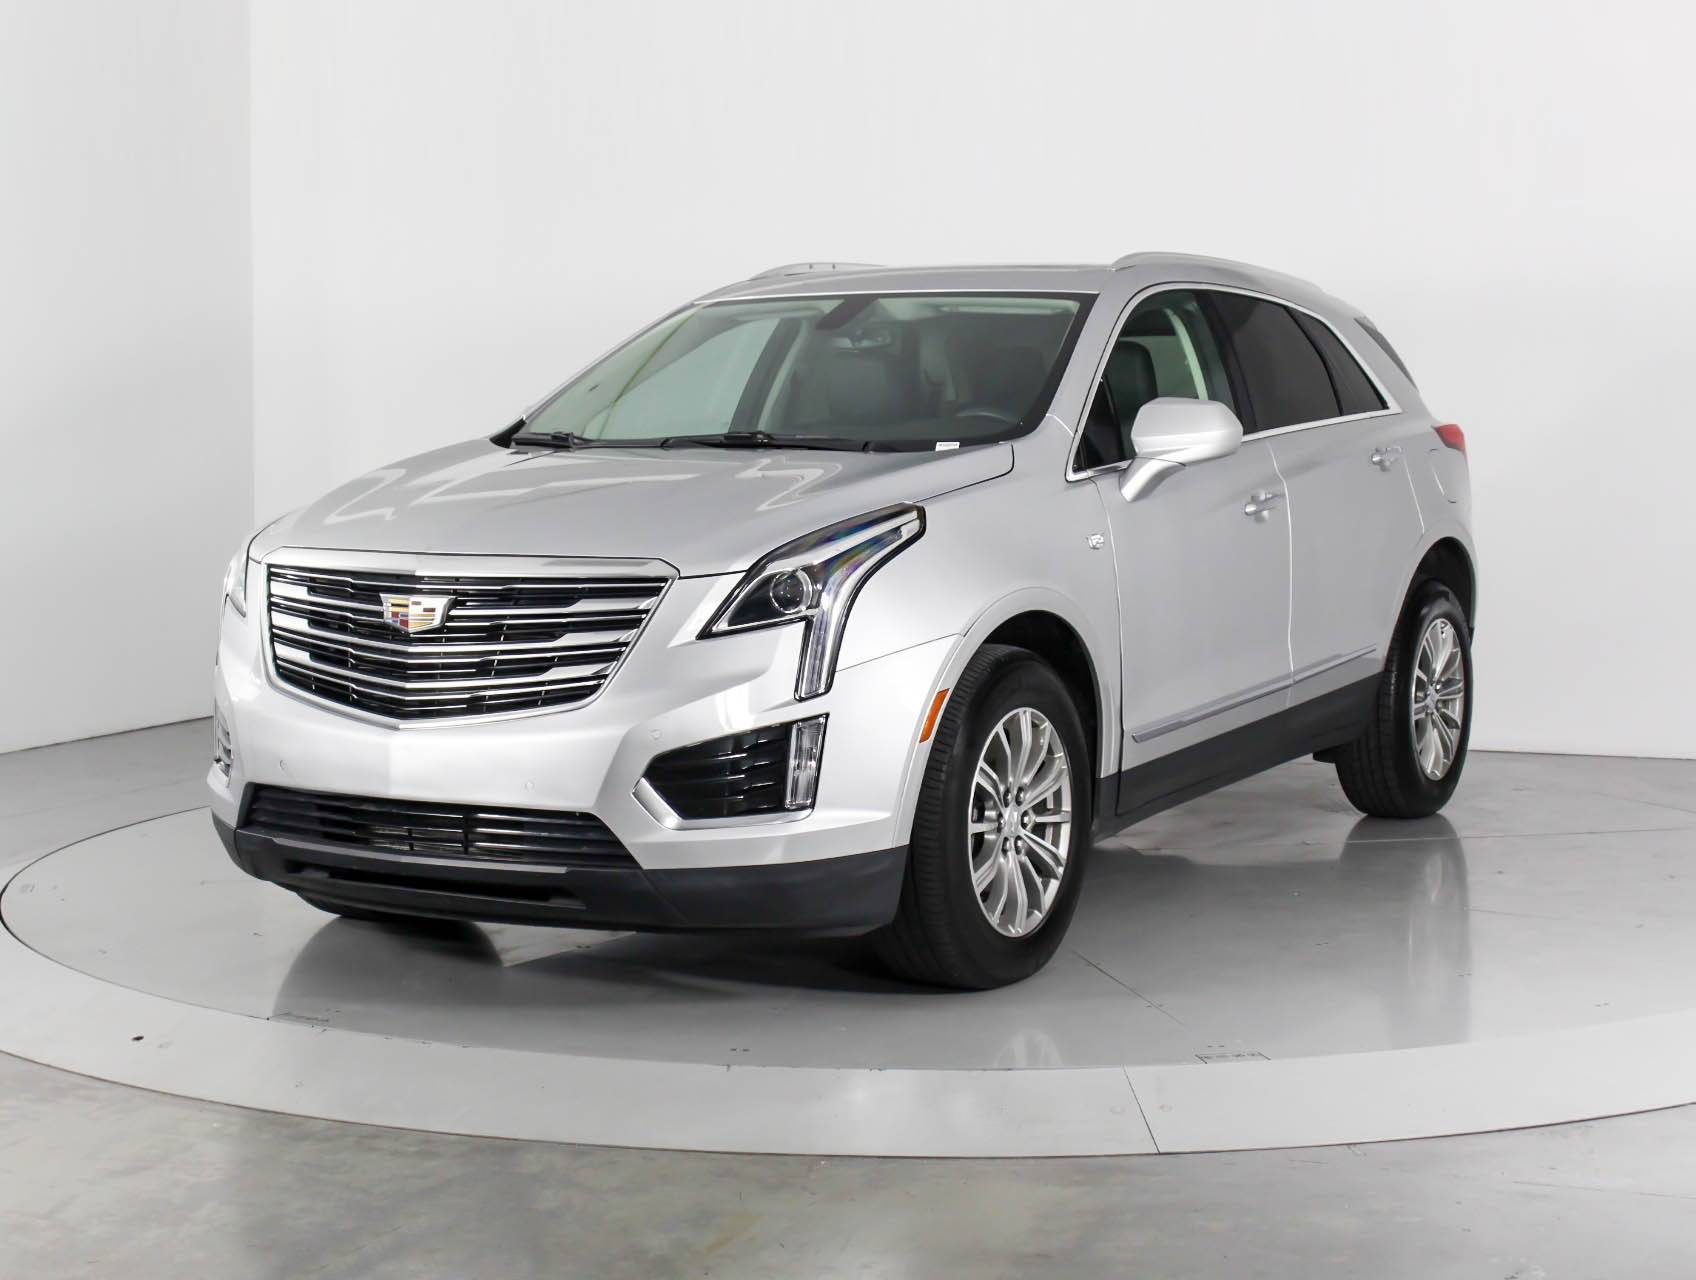 Cadillac Suv For Sale >> Used 2017 CADILLAC XT5 Luxury Awd SUV for sale in WEST